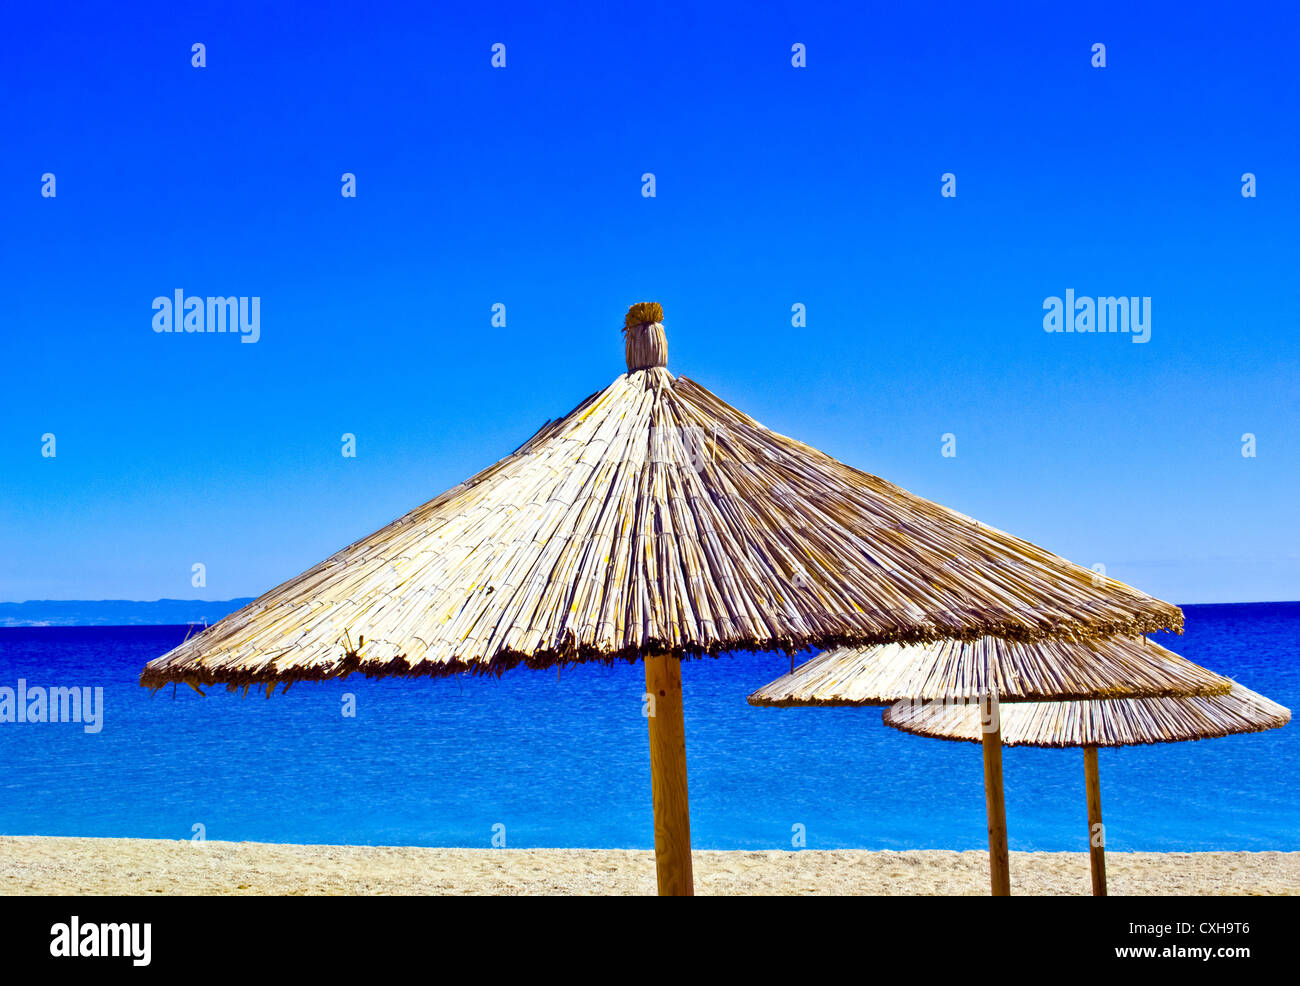 A straw umbrella on a tropical beach with blue sky - Stock Image